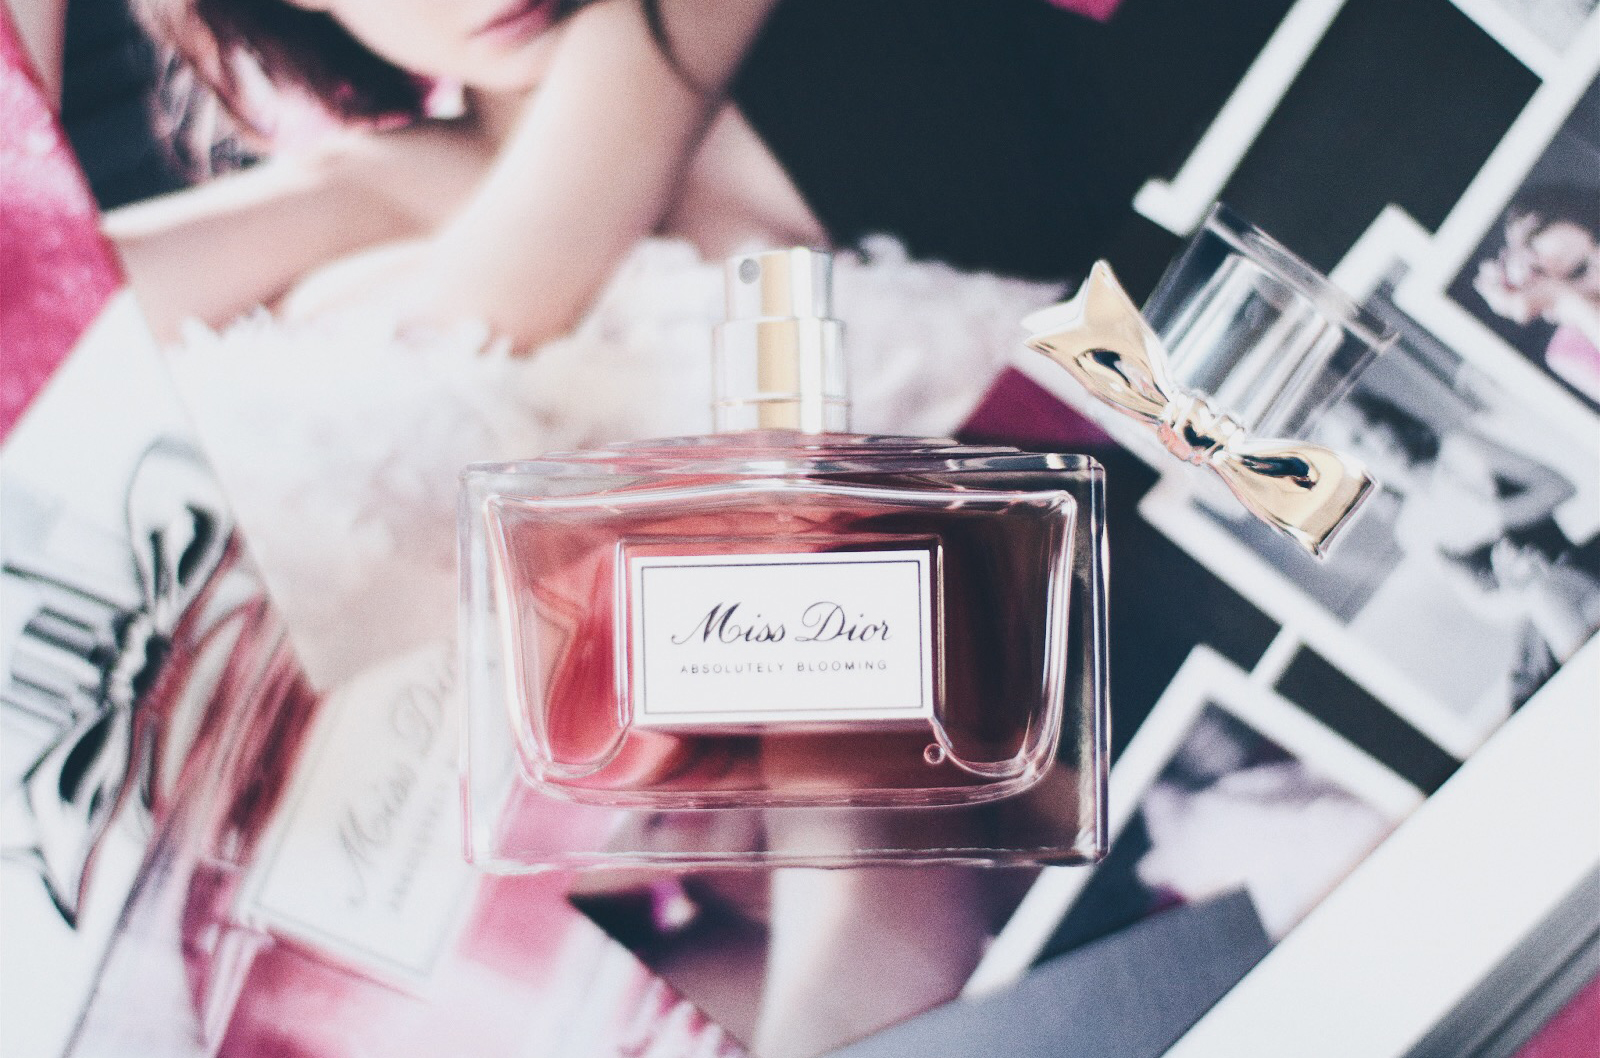 dior absolutely blooming parfum avis